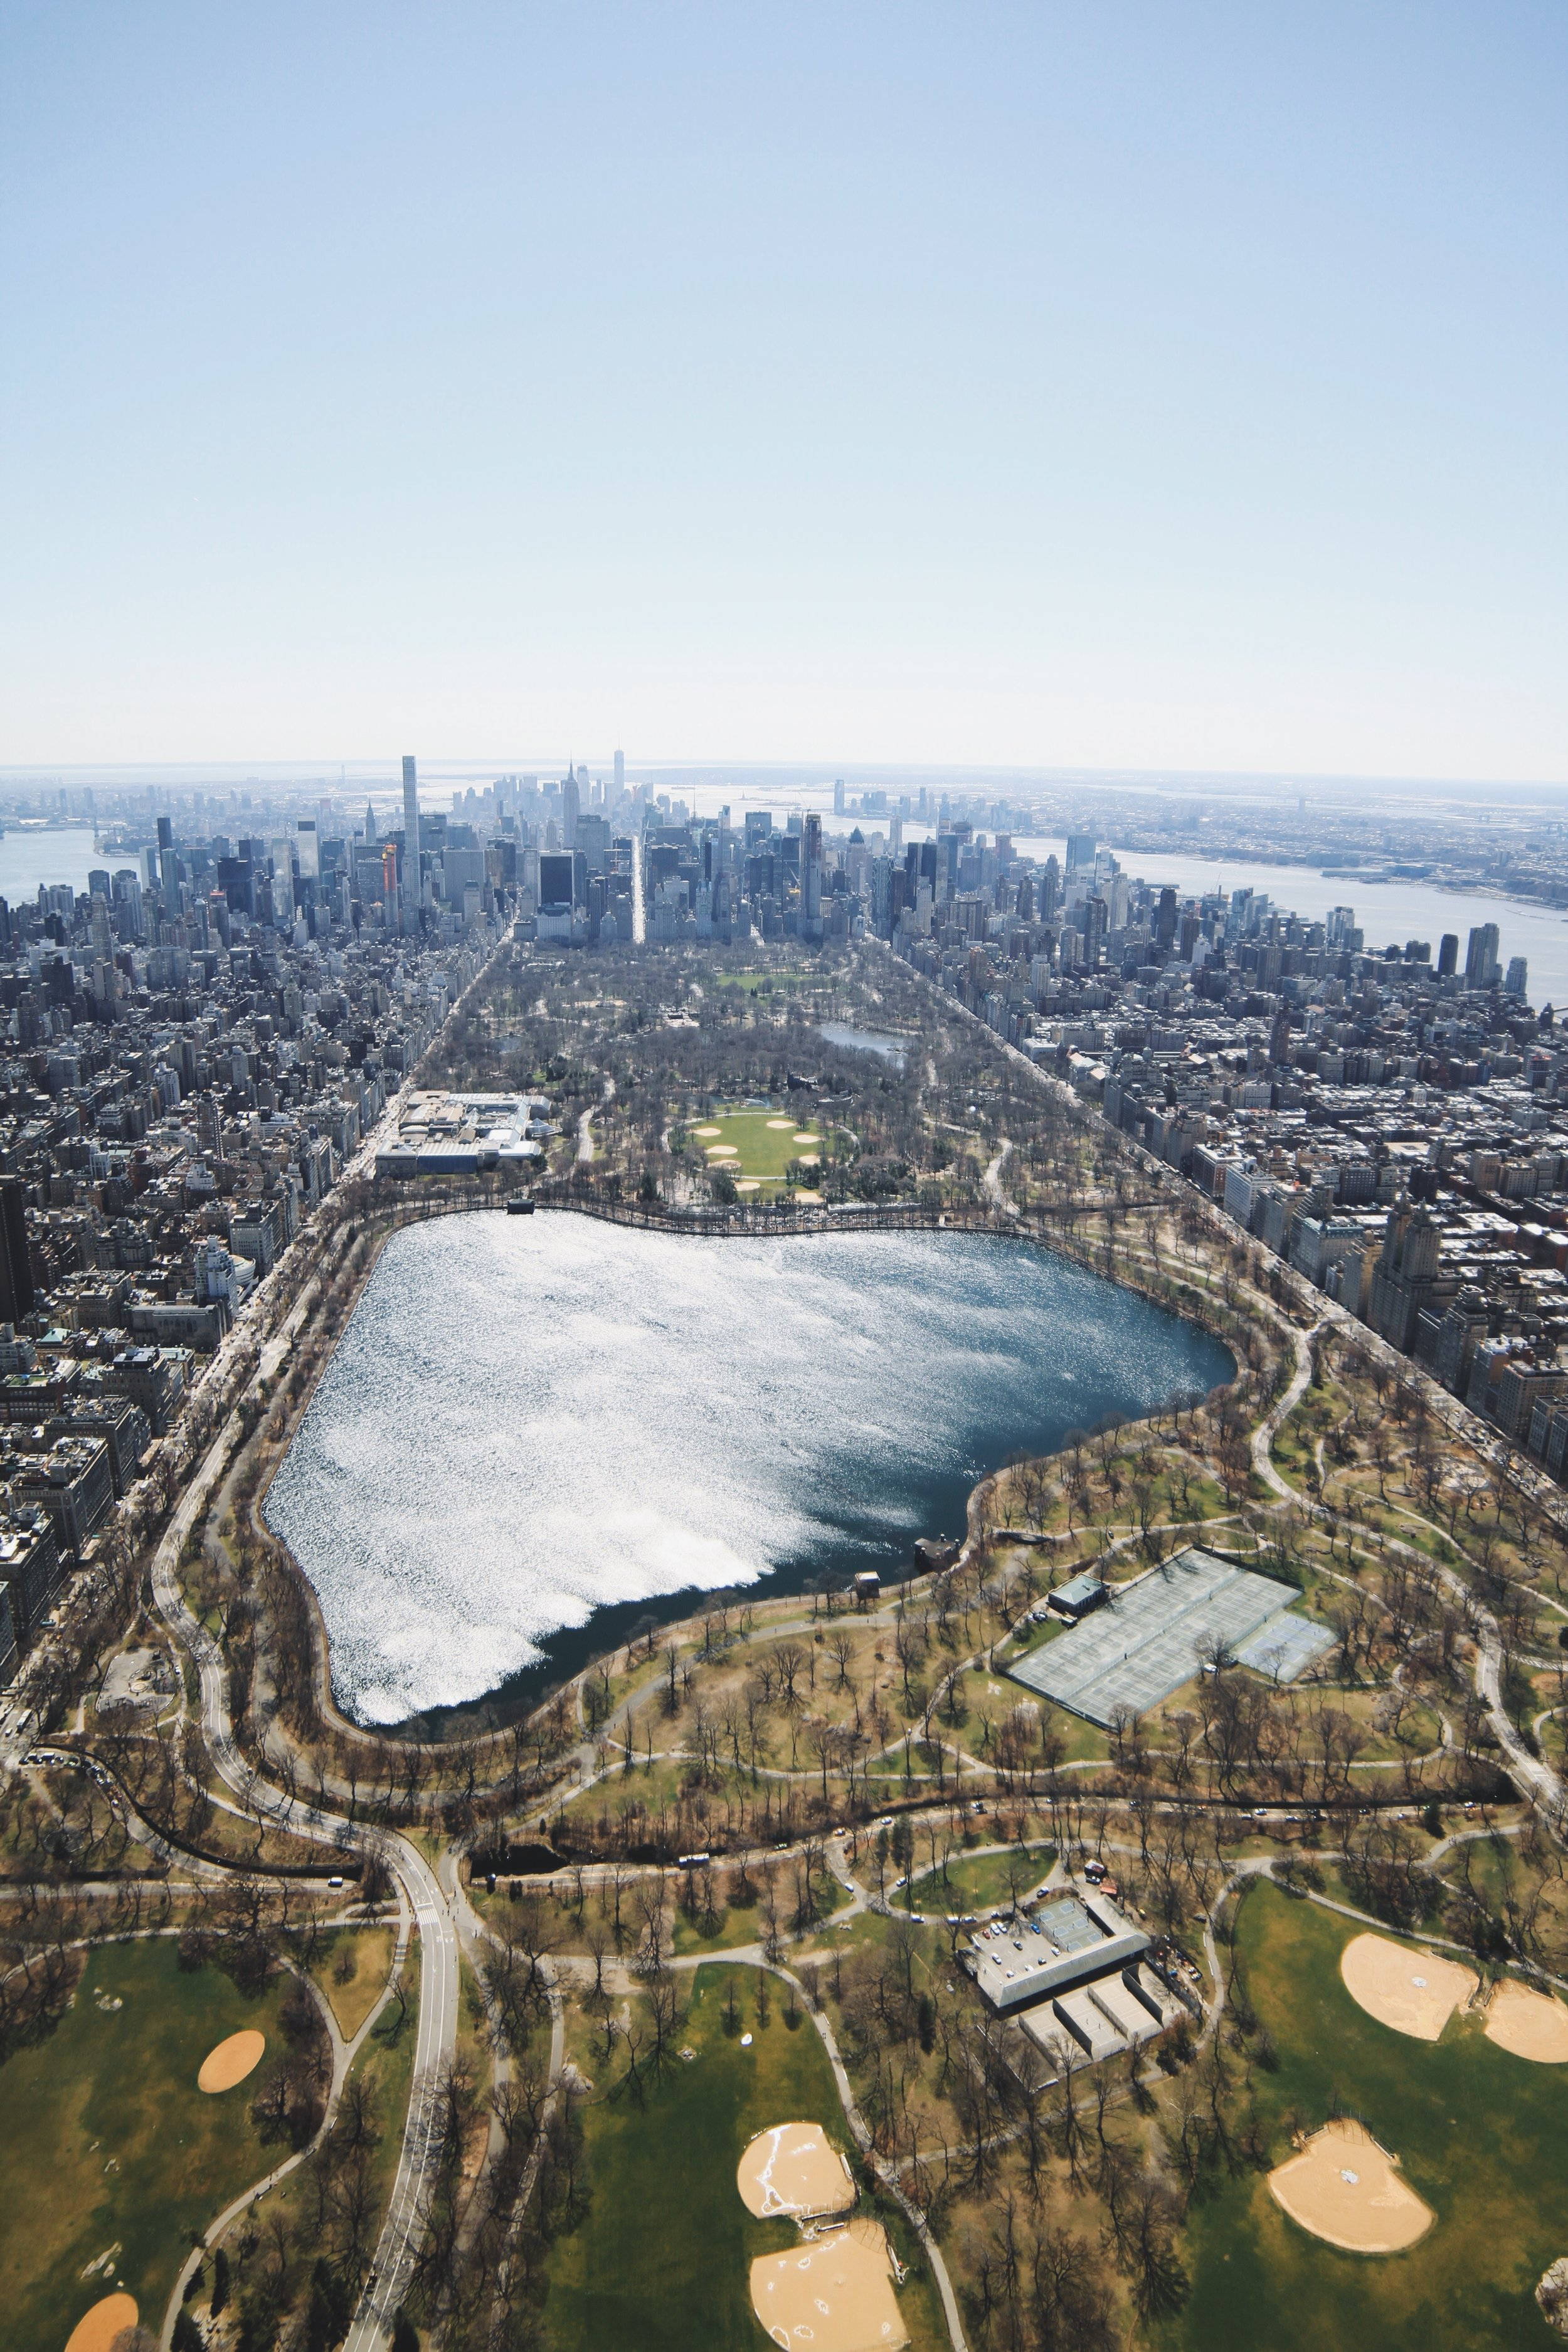 4/18/2017  Central Park  New York, New York  40.783184, -73.965510  Check out Central Park in New York City from our recent helicopter flight with @nyonair. The park was established with 778 acres in 1857, but was expanded to its current size of 843 acres in 1873. In 2013, the space had roughly 40 million visitors, making it the most visited urban park in the United States.